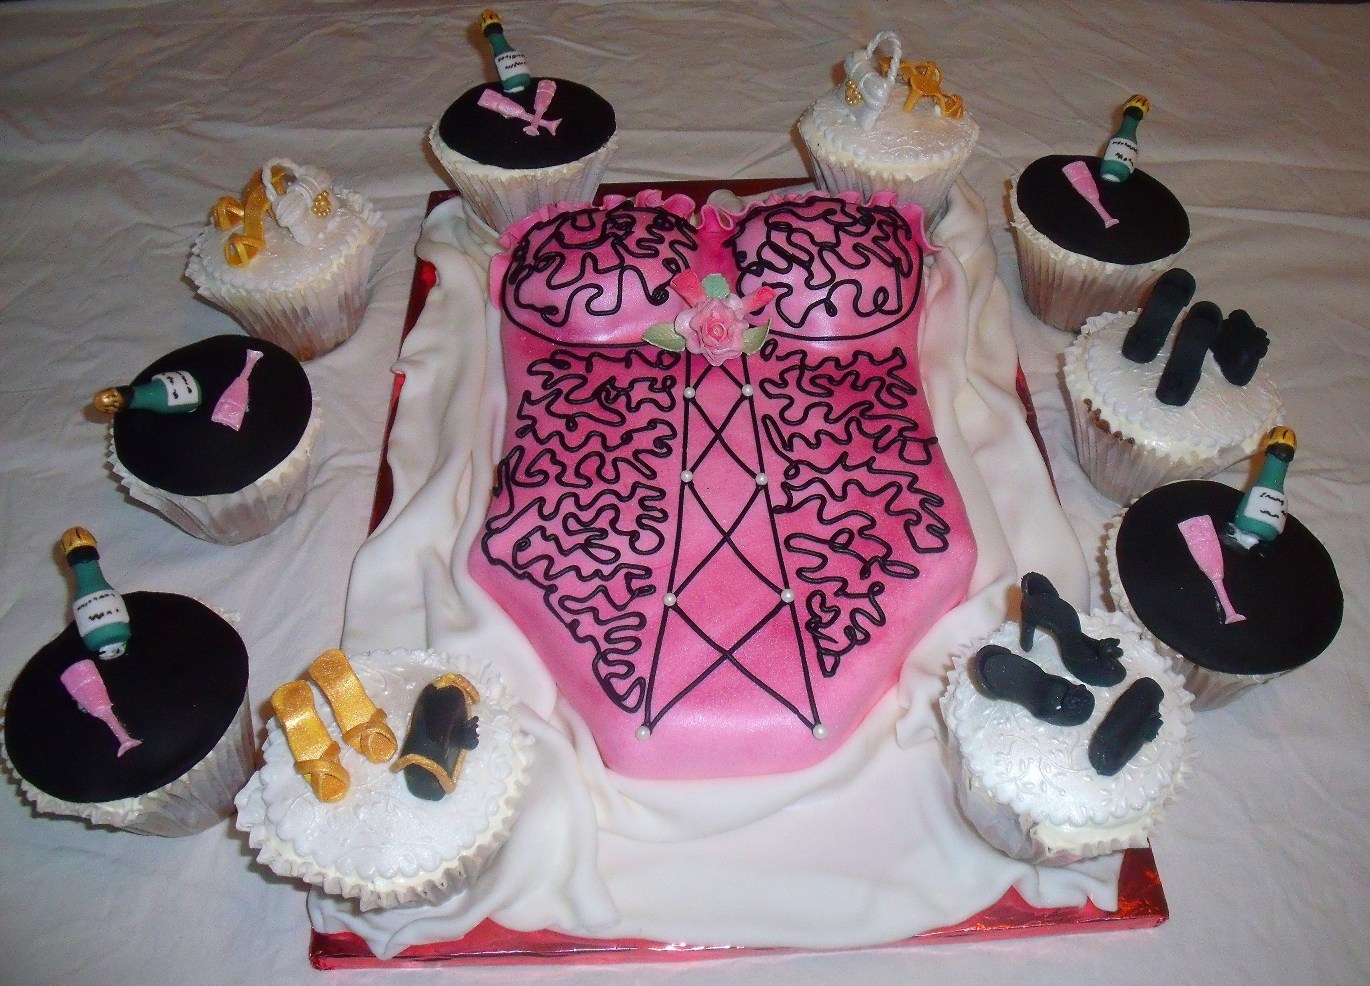 corset or lingerie bridal shower cake with cupcakes view 2 view full size view slideshow